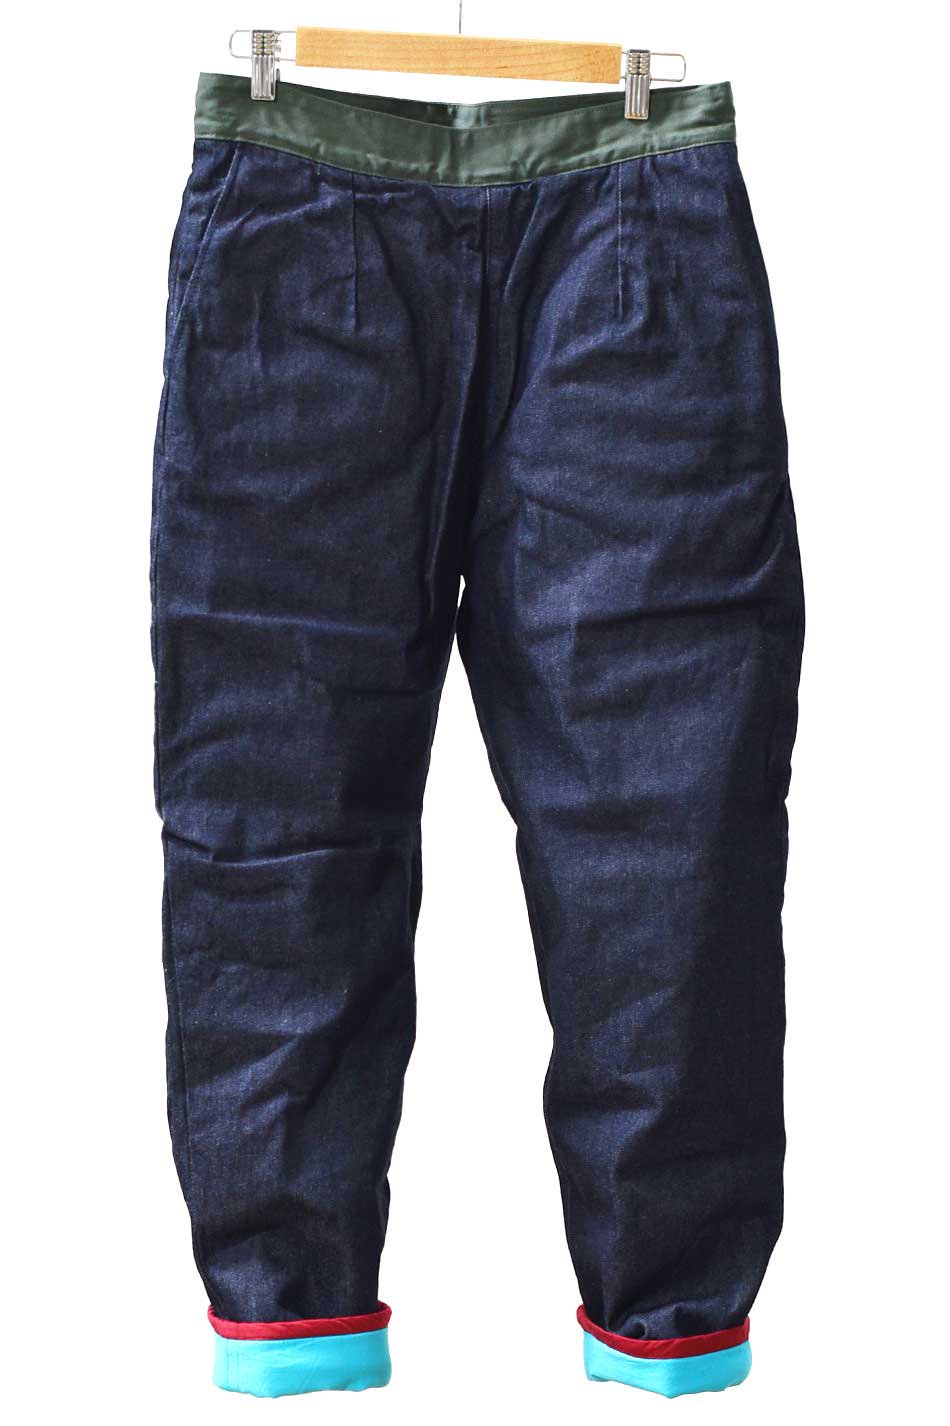 ARIGATO FAKKYU - アリガトファッキュ PADDING PANTS /  ONE WASH<img class='new_mark_img2' src='https://img.shop-pro.jp/img/new/icons5.gif' style='border:none;display:inline;margin:0px;padding:0px;width:auto;' />